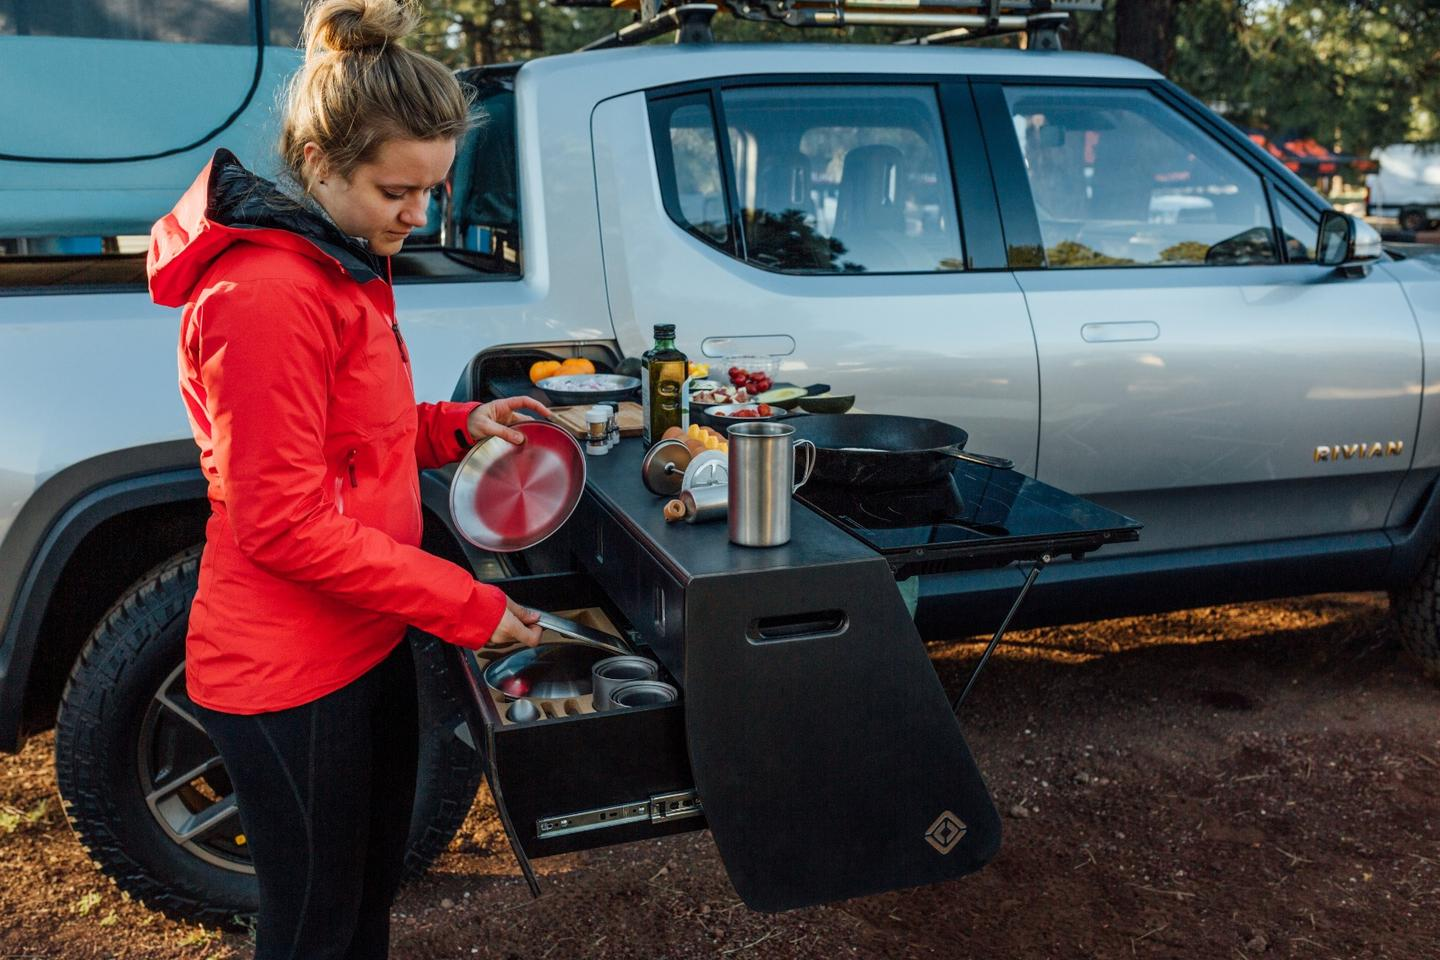 Preparing some food and beverage on the Rivian R1T overland pickup